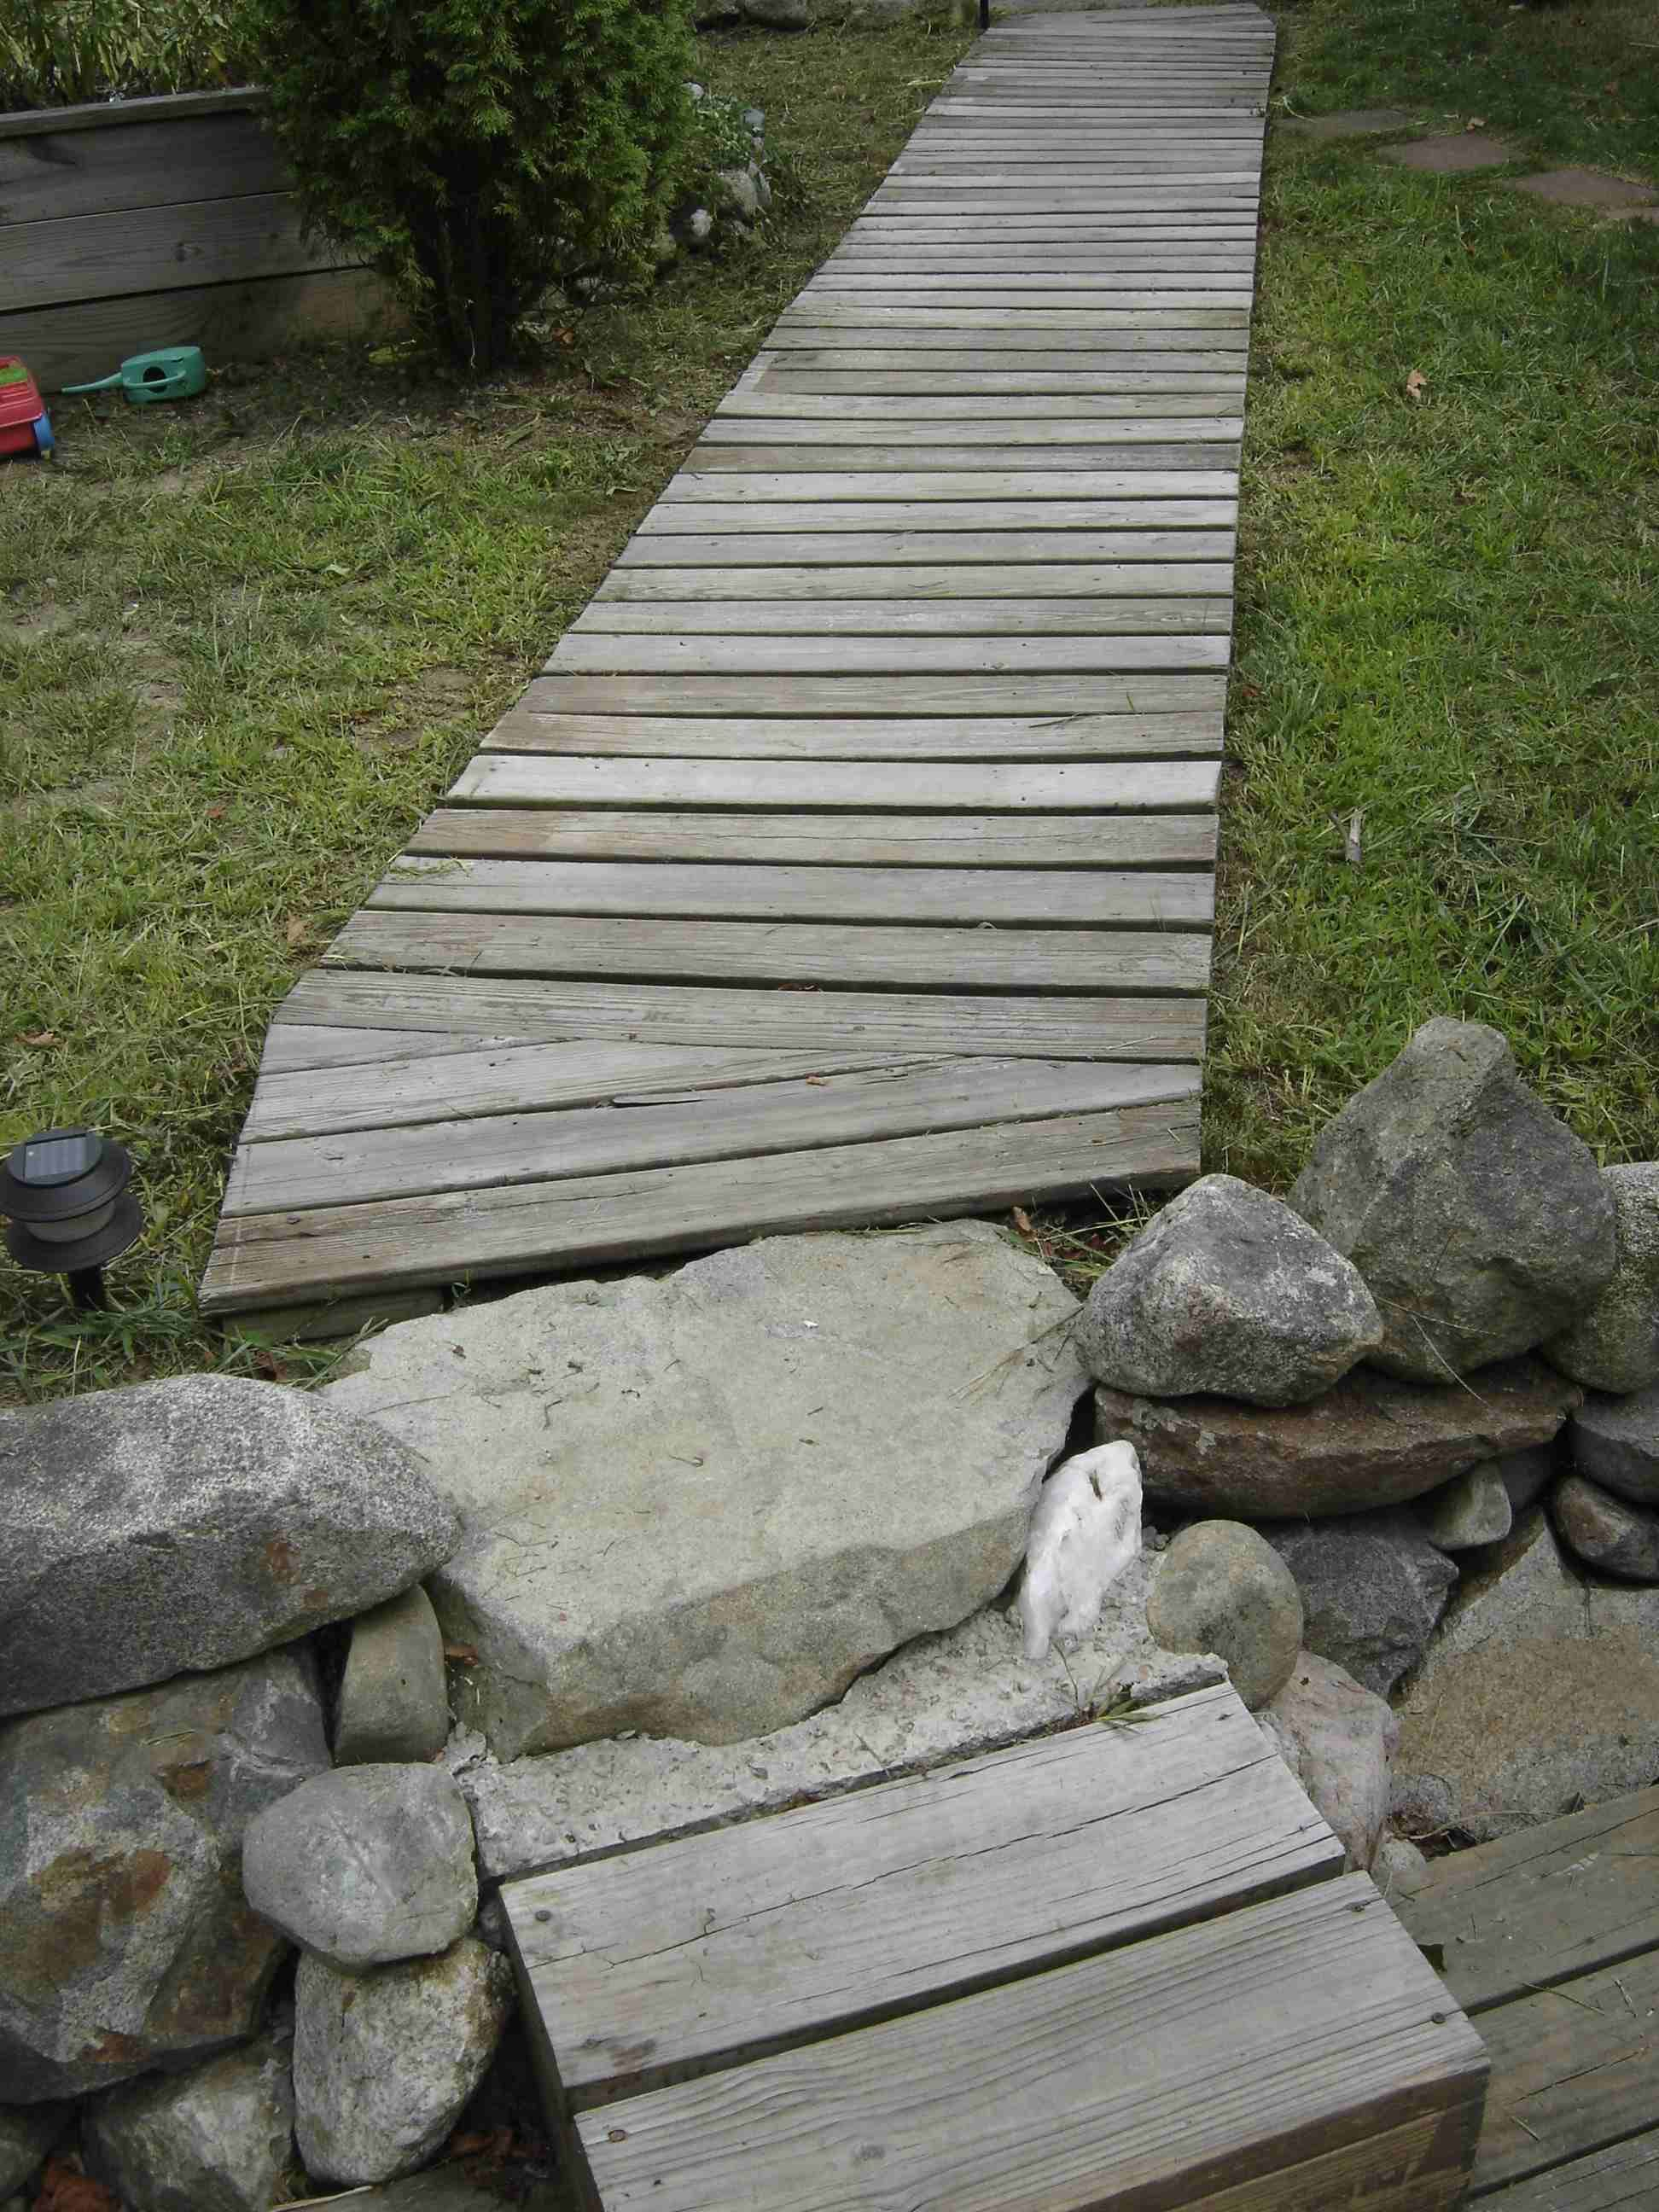 Diy wood walkway who needs concrete when you have free pressure treated lumber outdoor for Pressure treated wood for garden